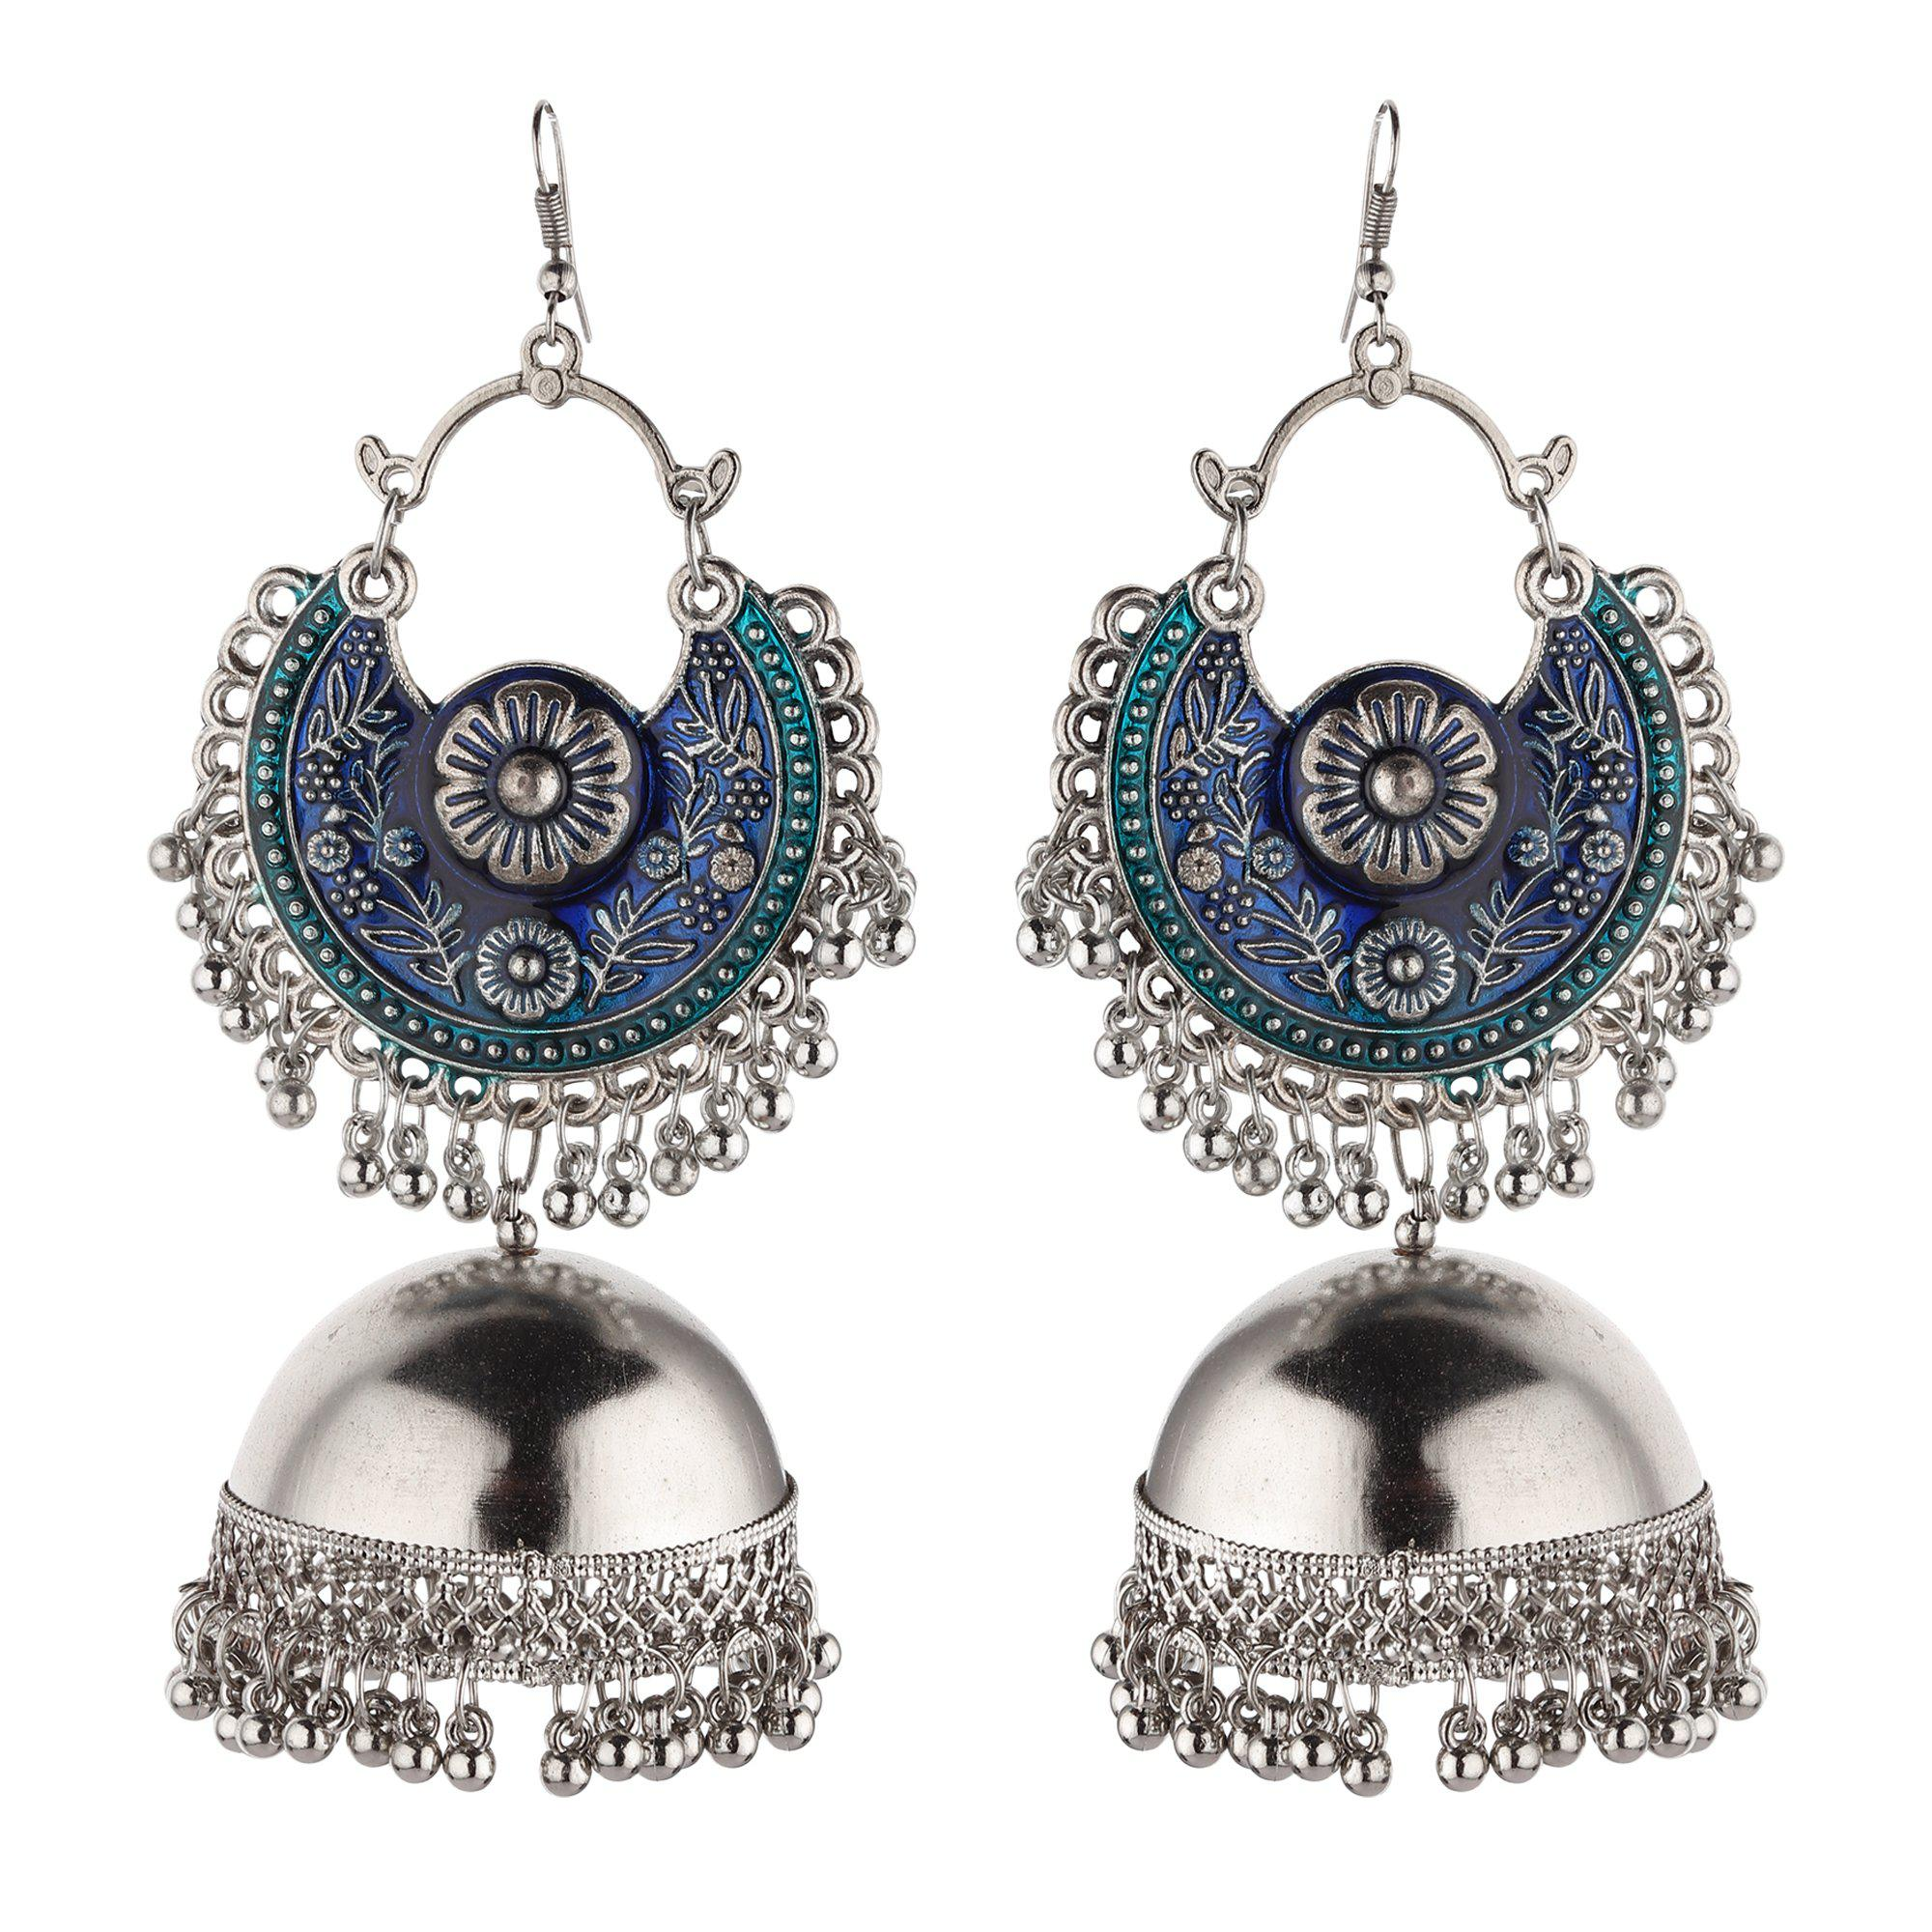 The Intricate Blue Embellished Jhumkas